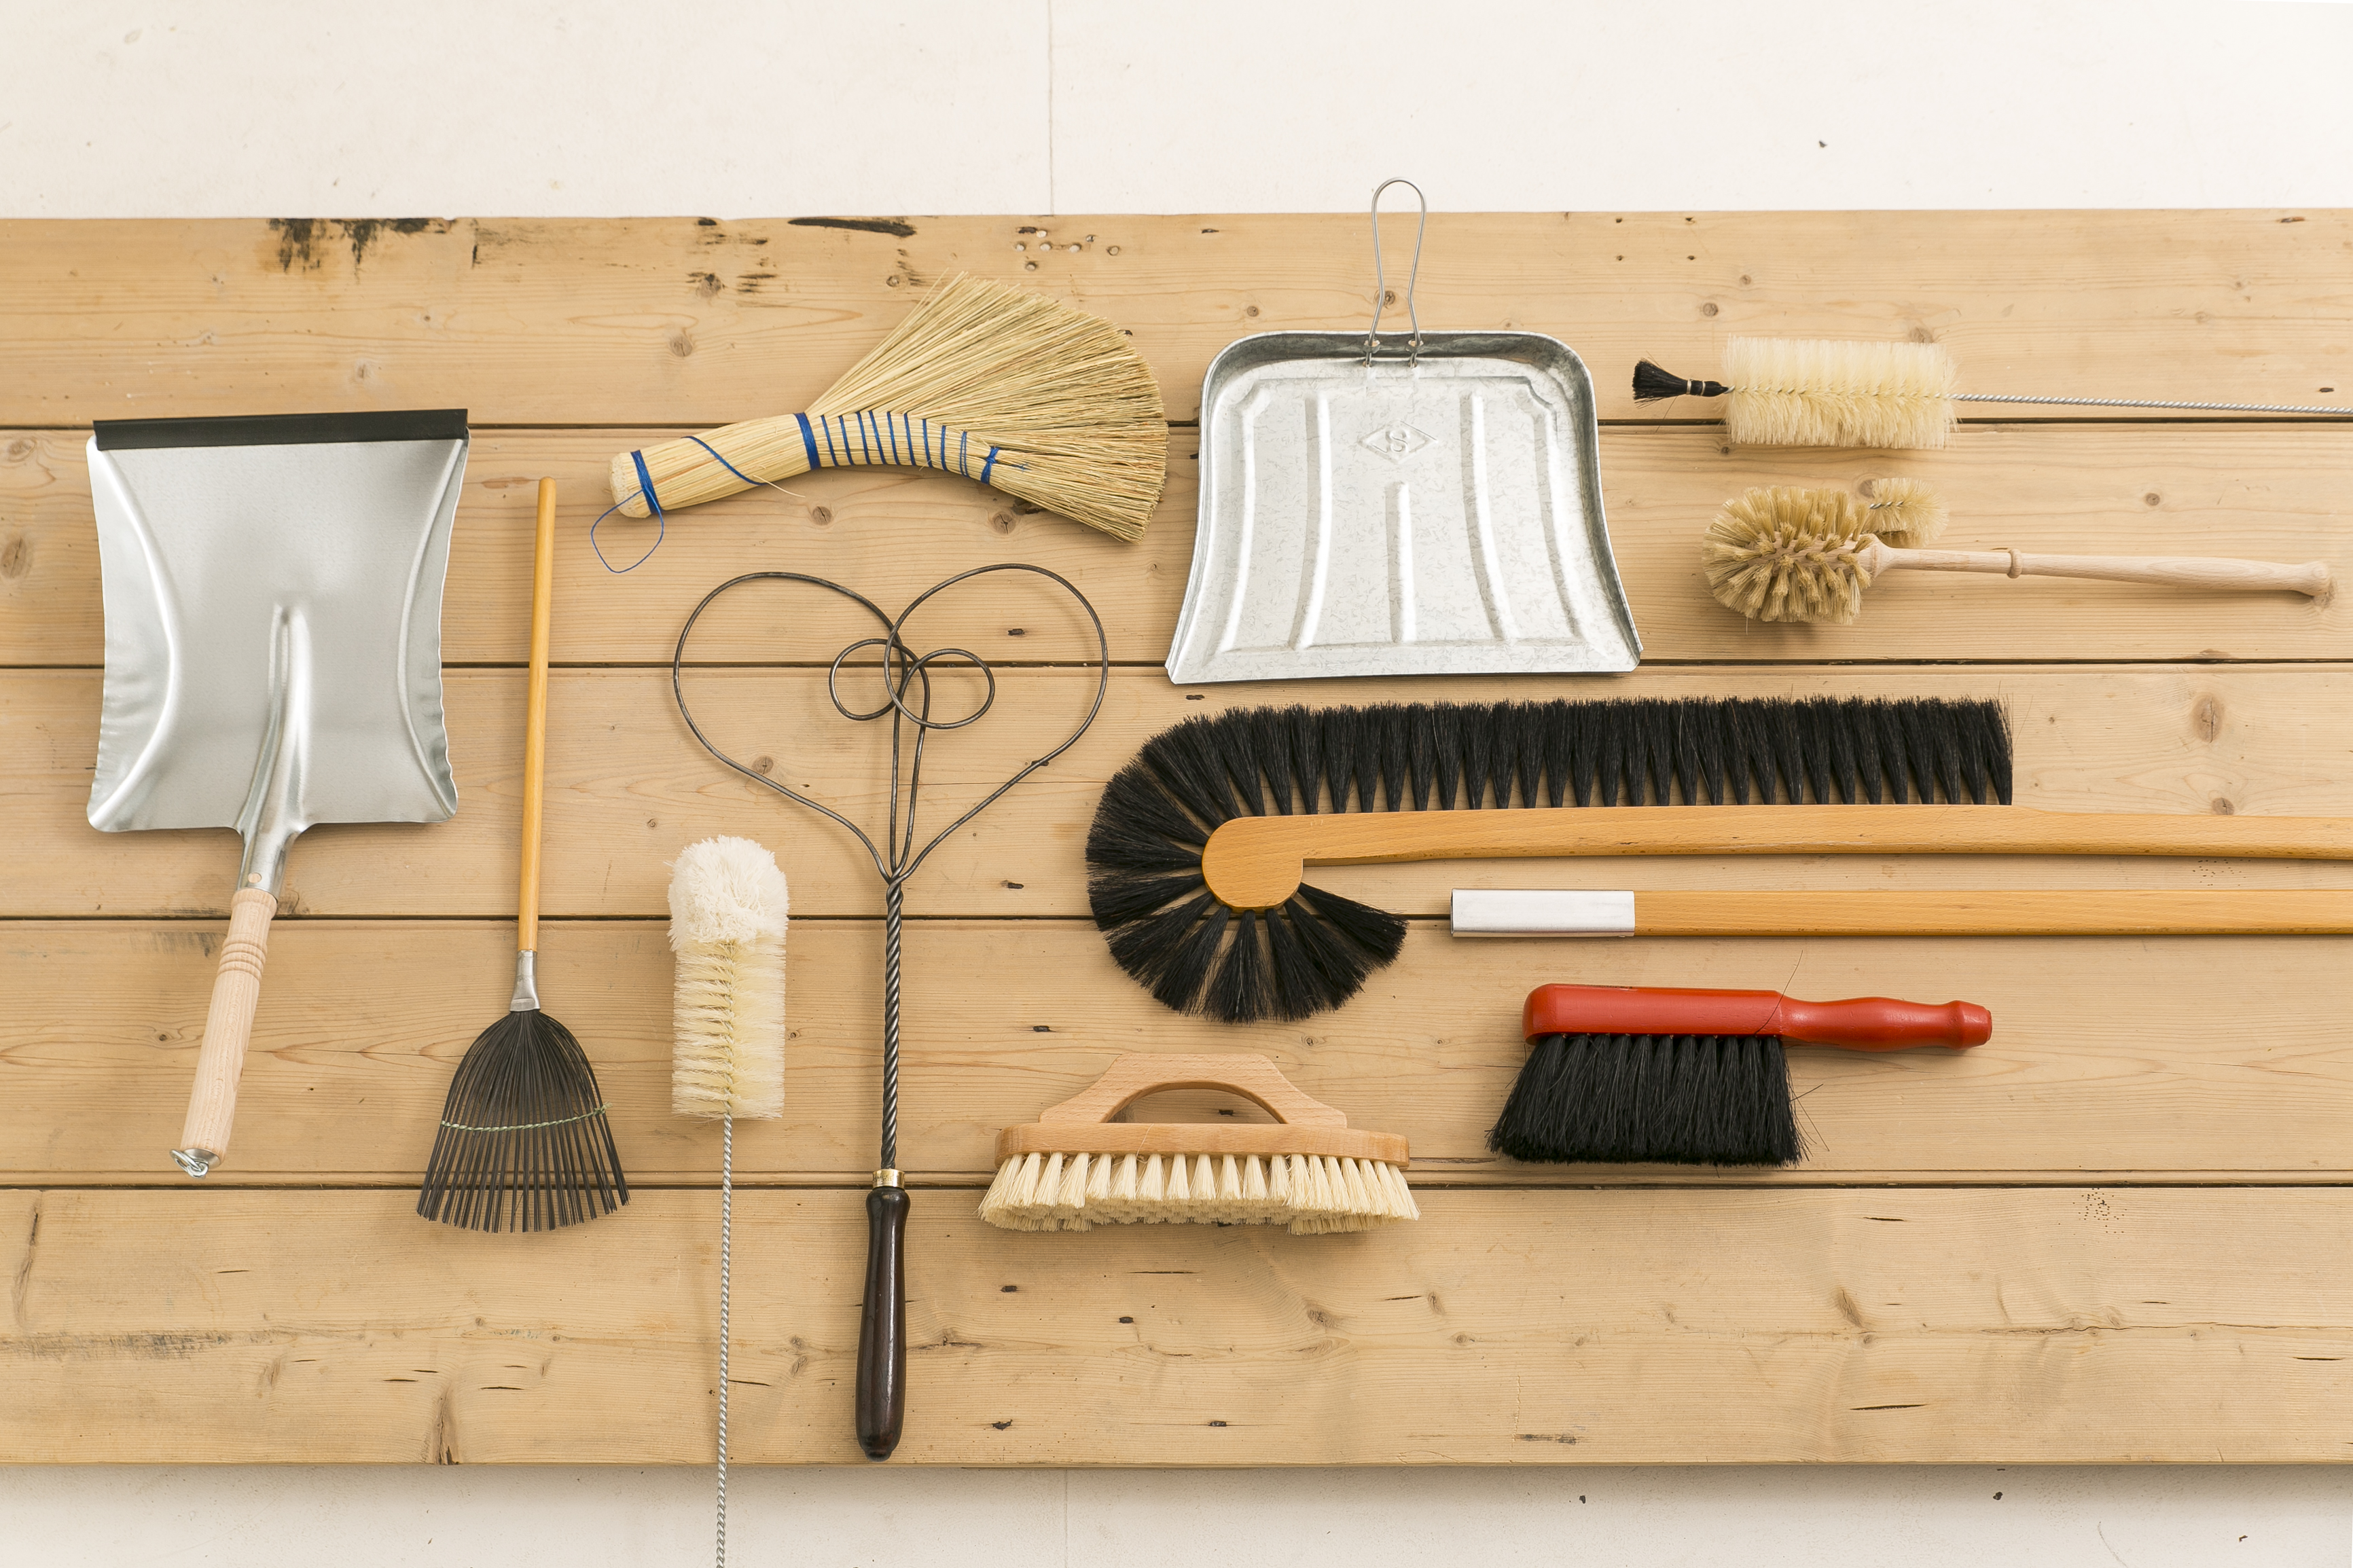 (l-r) Dustpan, £9; Fly Swat, £9; Bottle Brush, £6.75; Rice Straw Hand Brush, £7.50; (heart shaped) Old Carpet Beater, £14.50; Dustpa ?; Extending Cupboard Brush, £35; Red Handled Brush, £6.50; Bottle Brush, £7; Loo Brush with Rim Cleaner, £8, RE for the Home (RE for the home/PA)